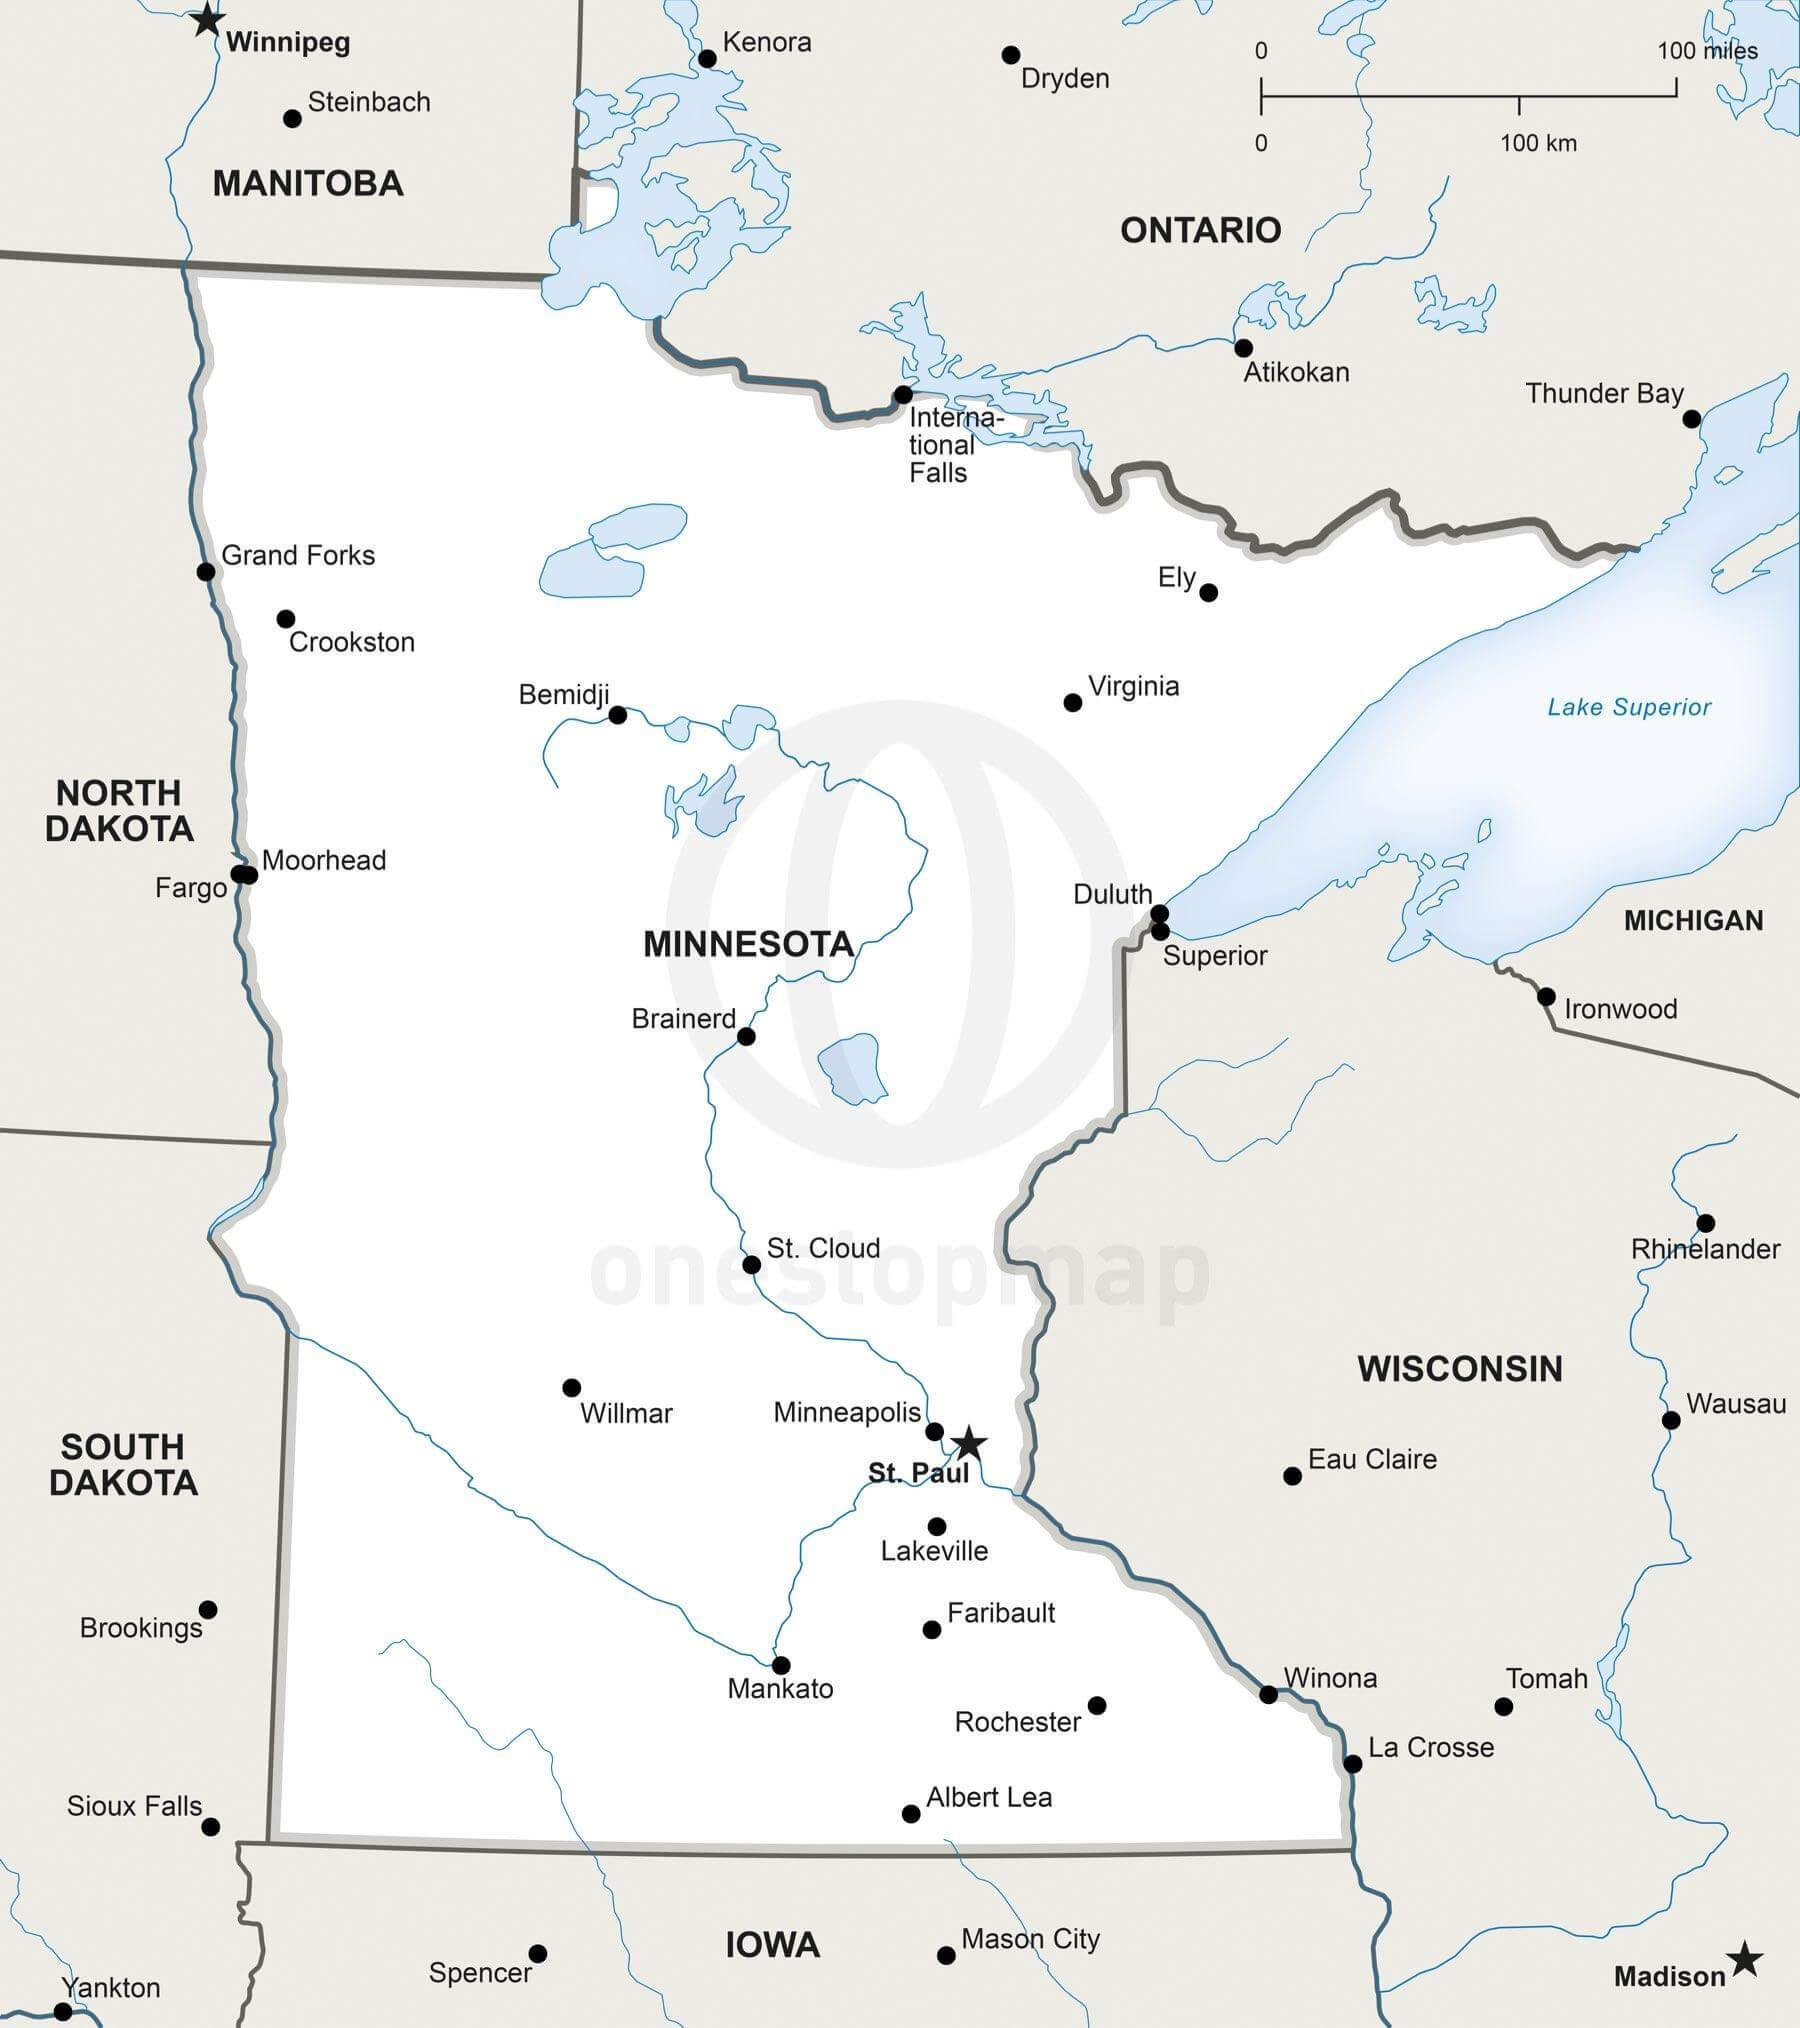 Map of Minnesota political